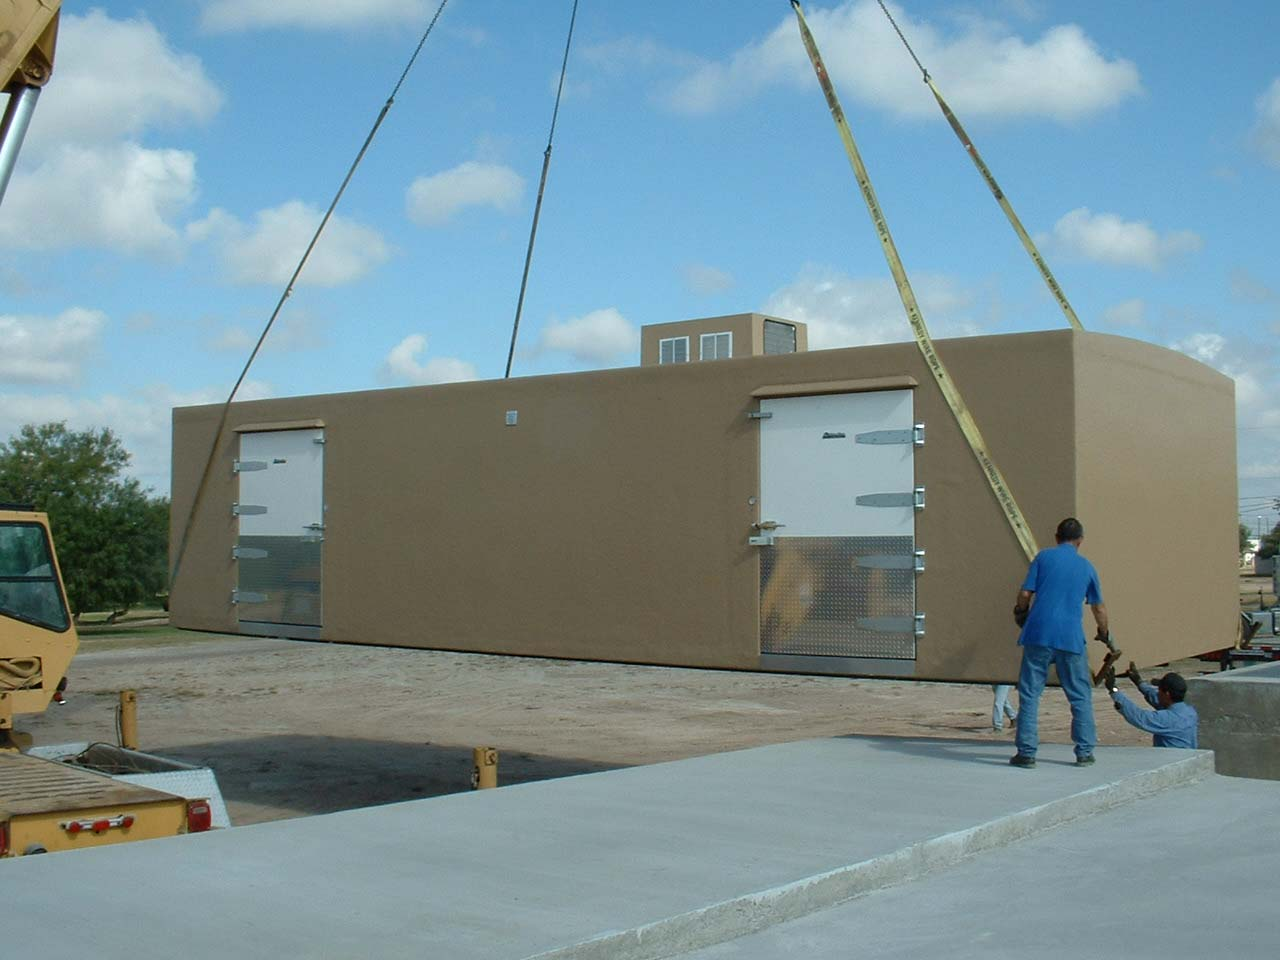 Tan Polar King walk-in cooler unit being delivered